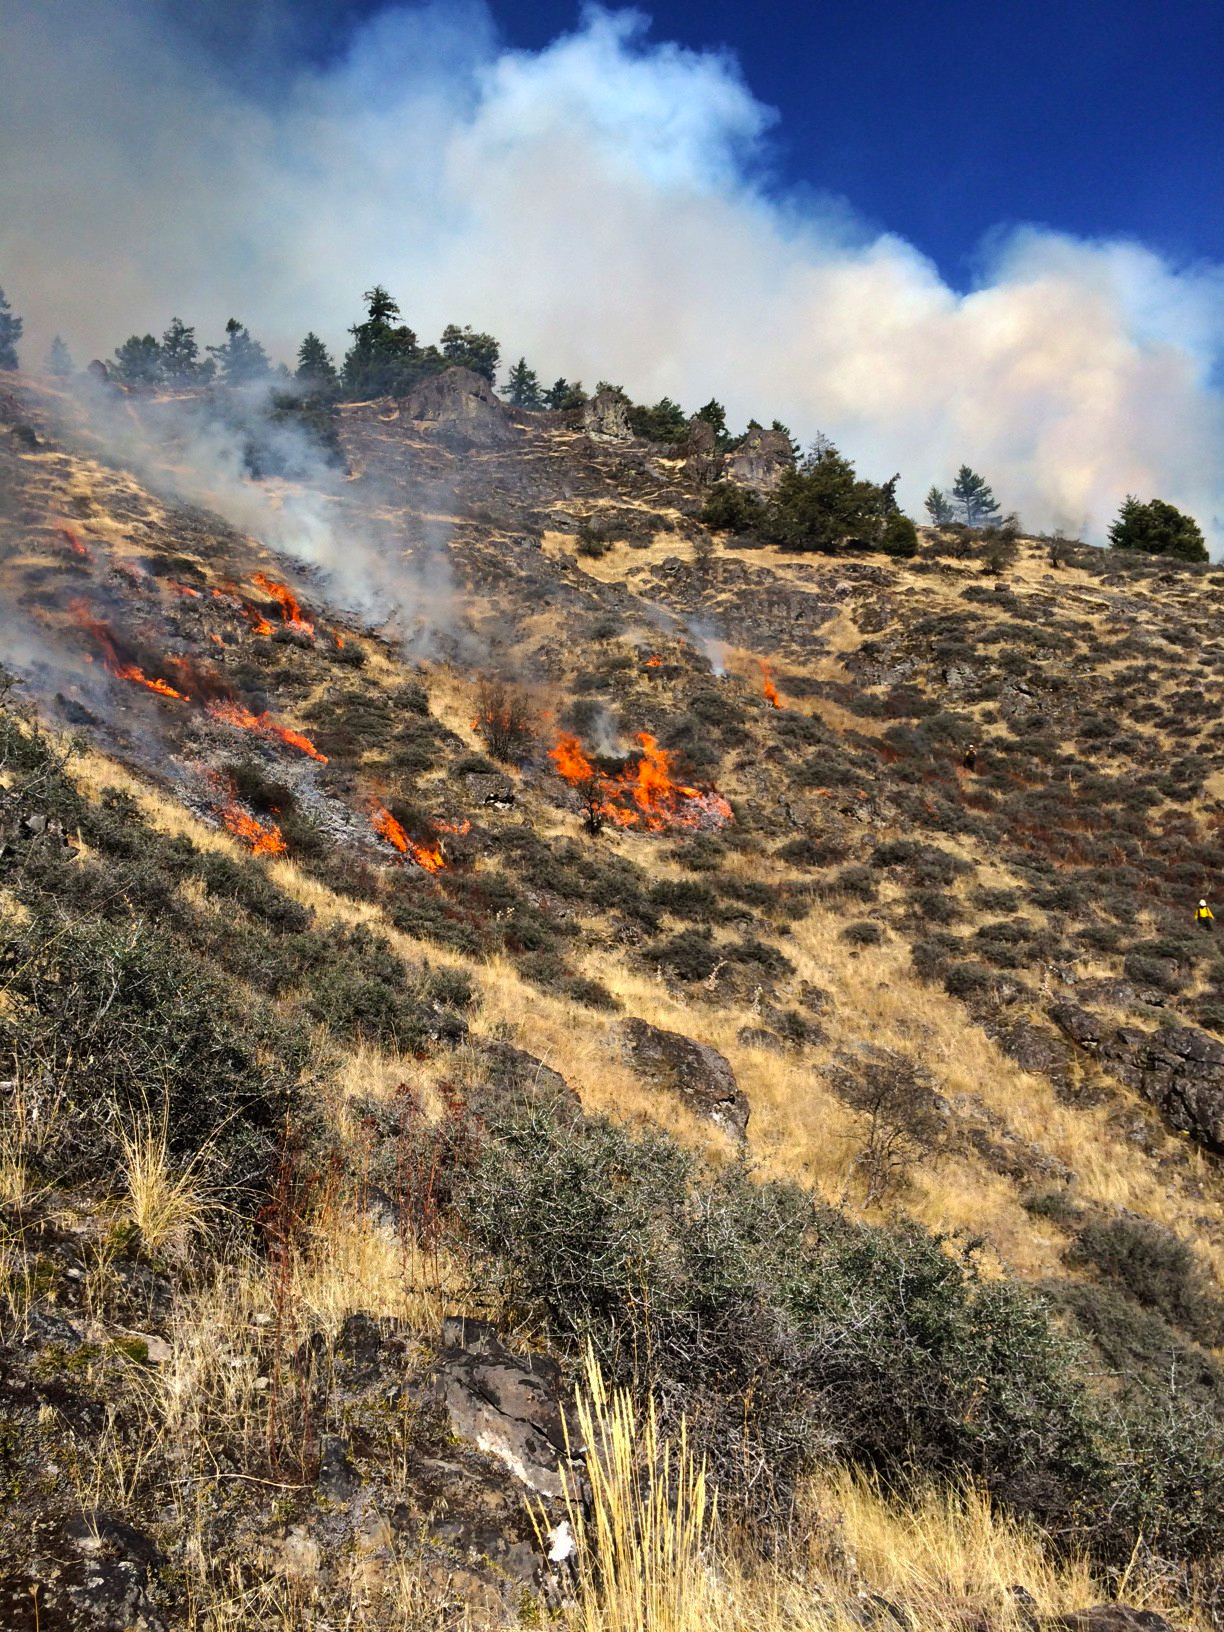 Getting fire back on the ground in controlled conditions can reduce fuels and restore meadows and open forest, potentially reducing future fire severity.